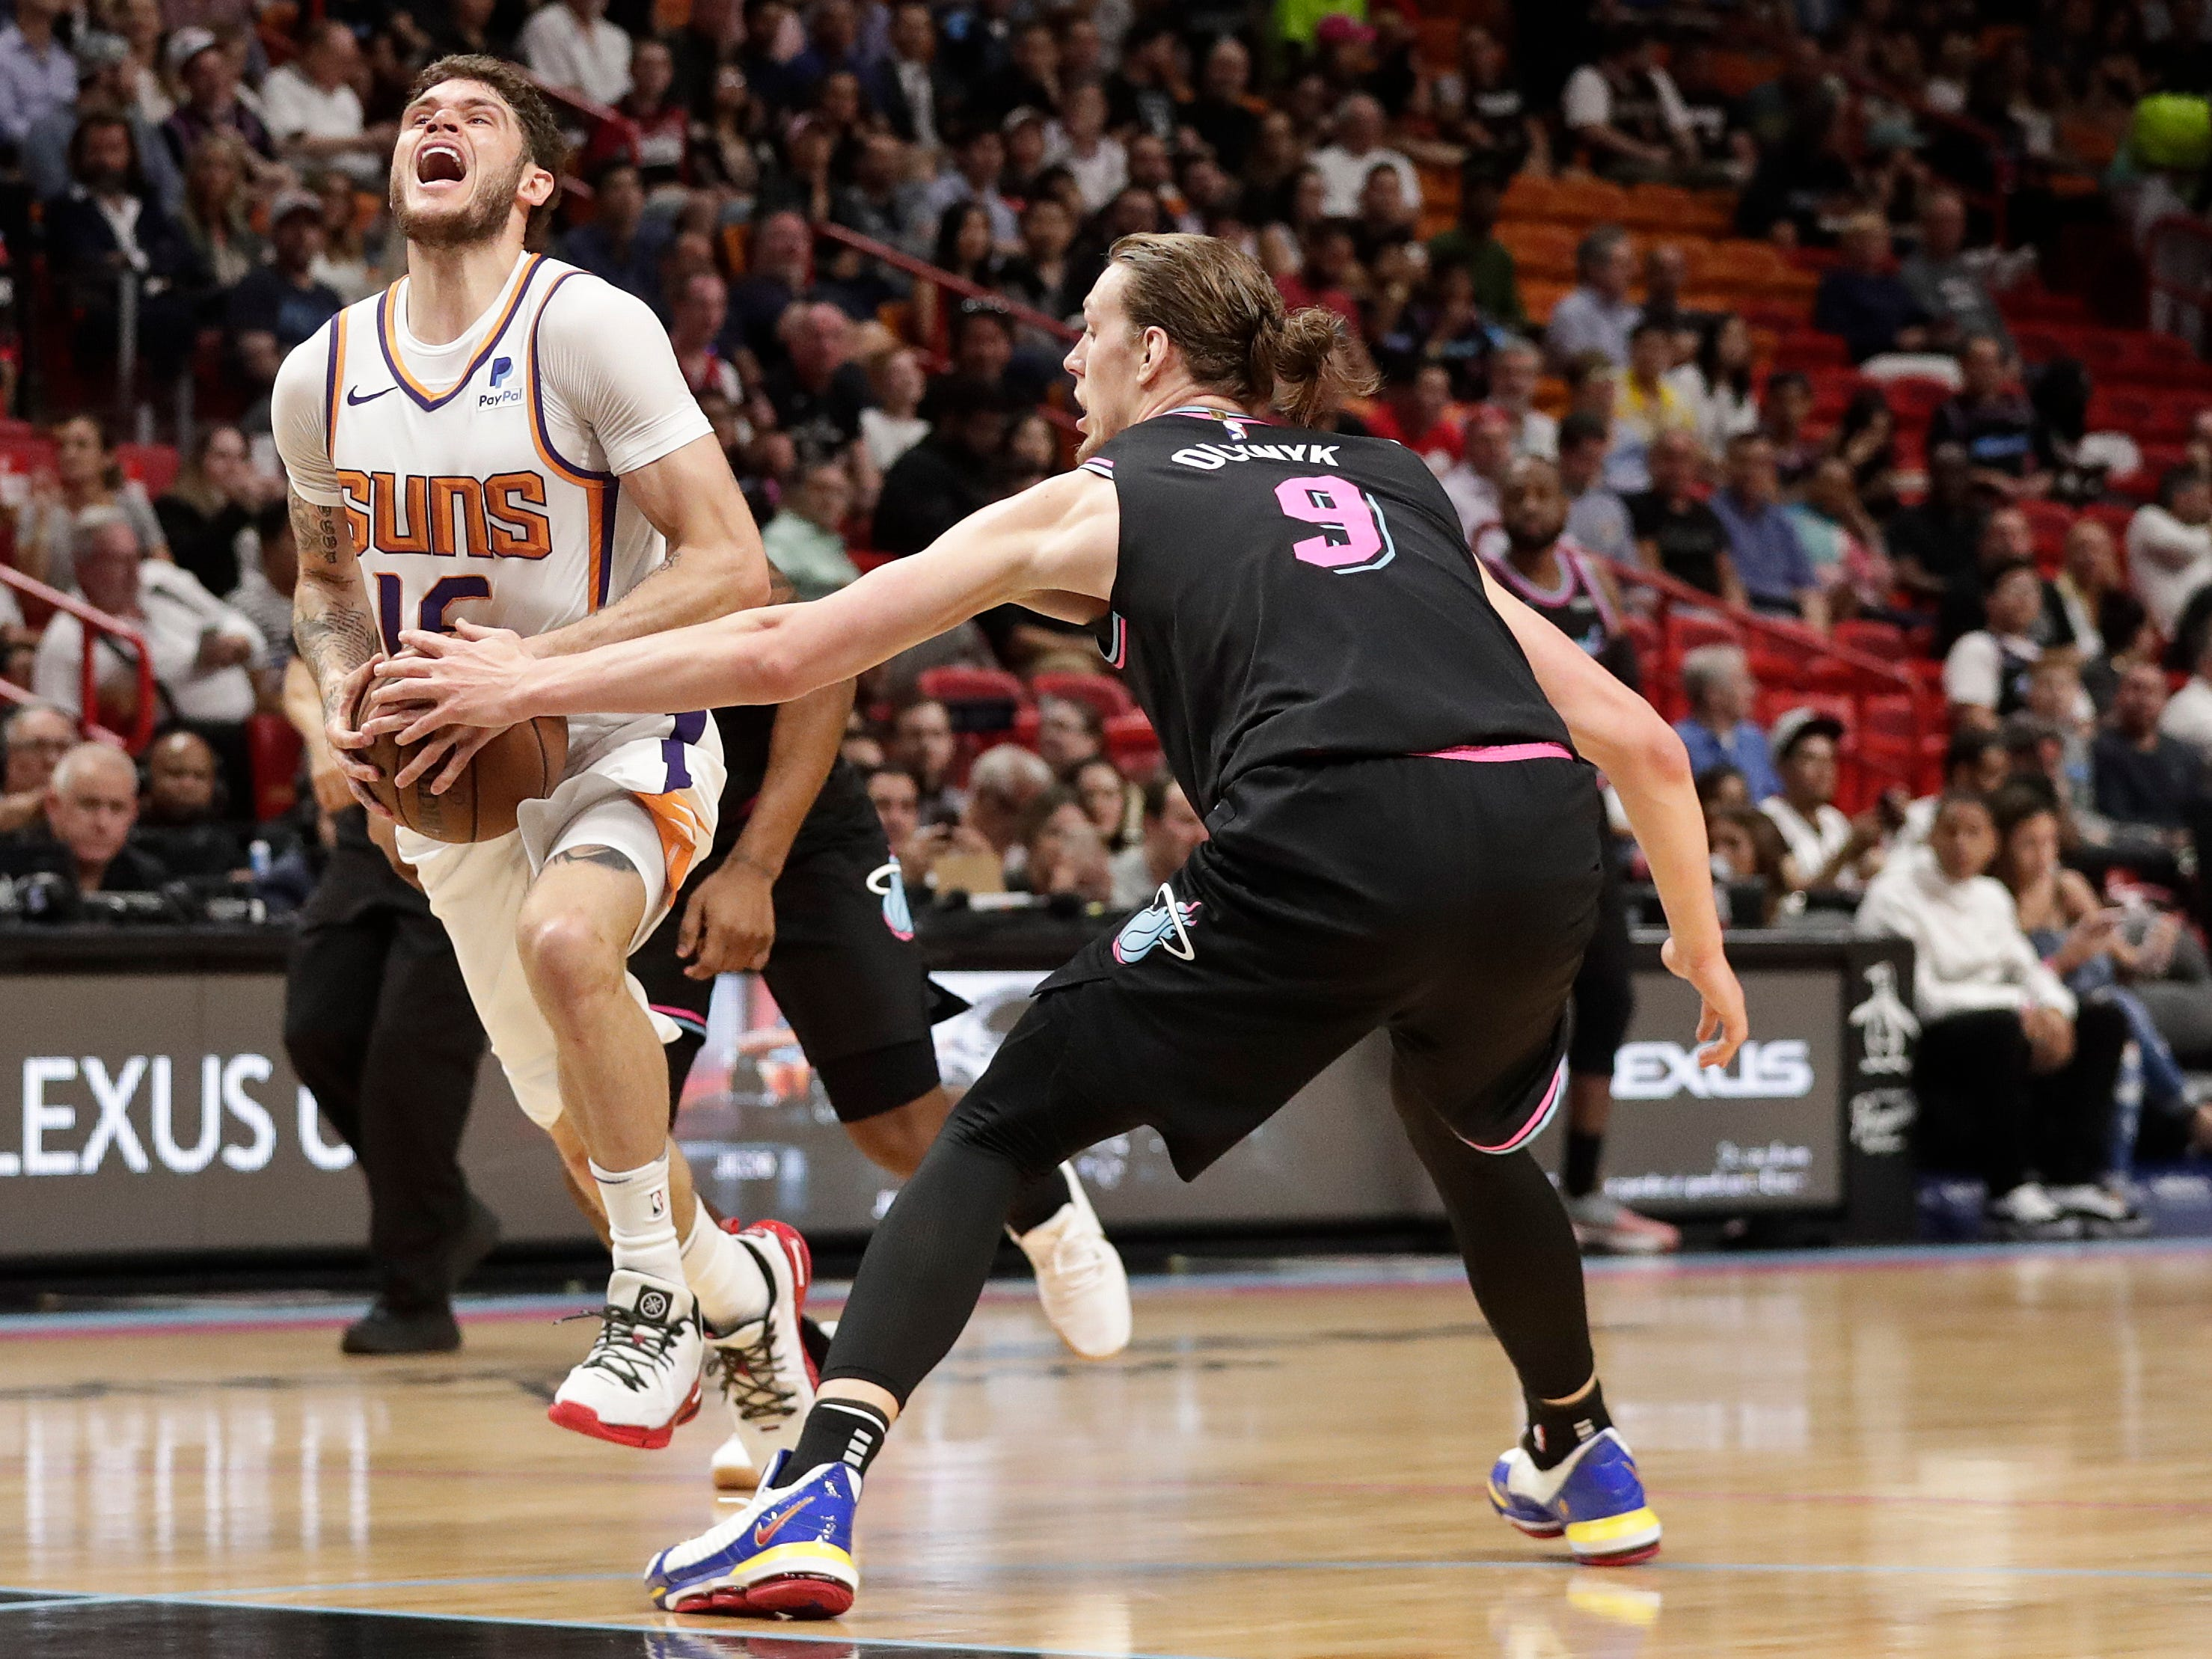 Phoenix Suns guard Tyler Johnson (16) reacts to a foul from Miami Heat forward Kelly Olynyk (9) during the first half of an NBA basketball game Monday, Feb. 25, 2019, in Miami. (AP Photo/Brynn Anderson)